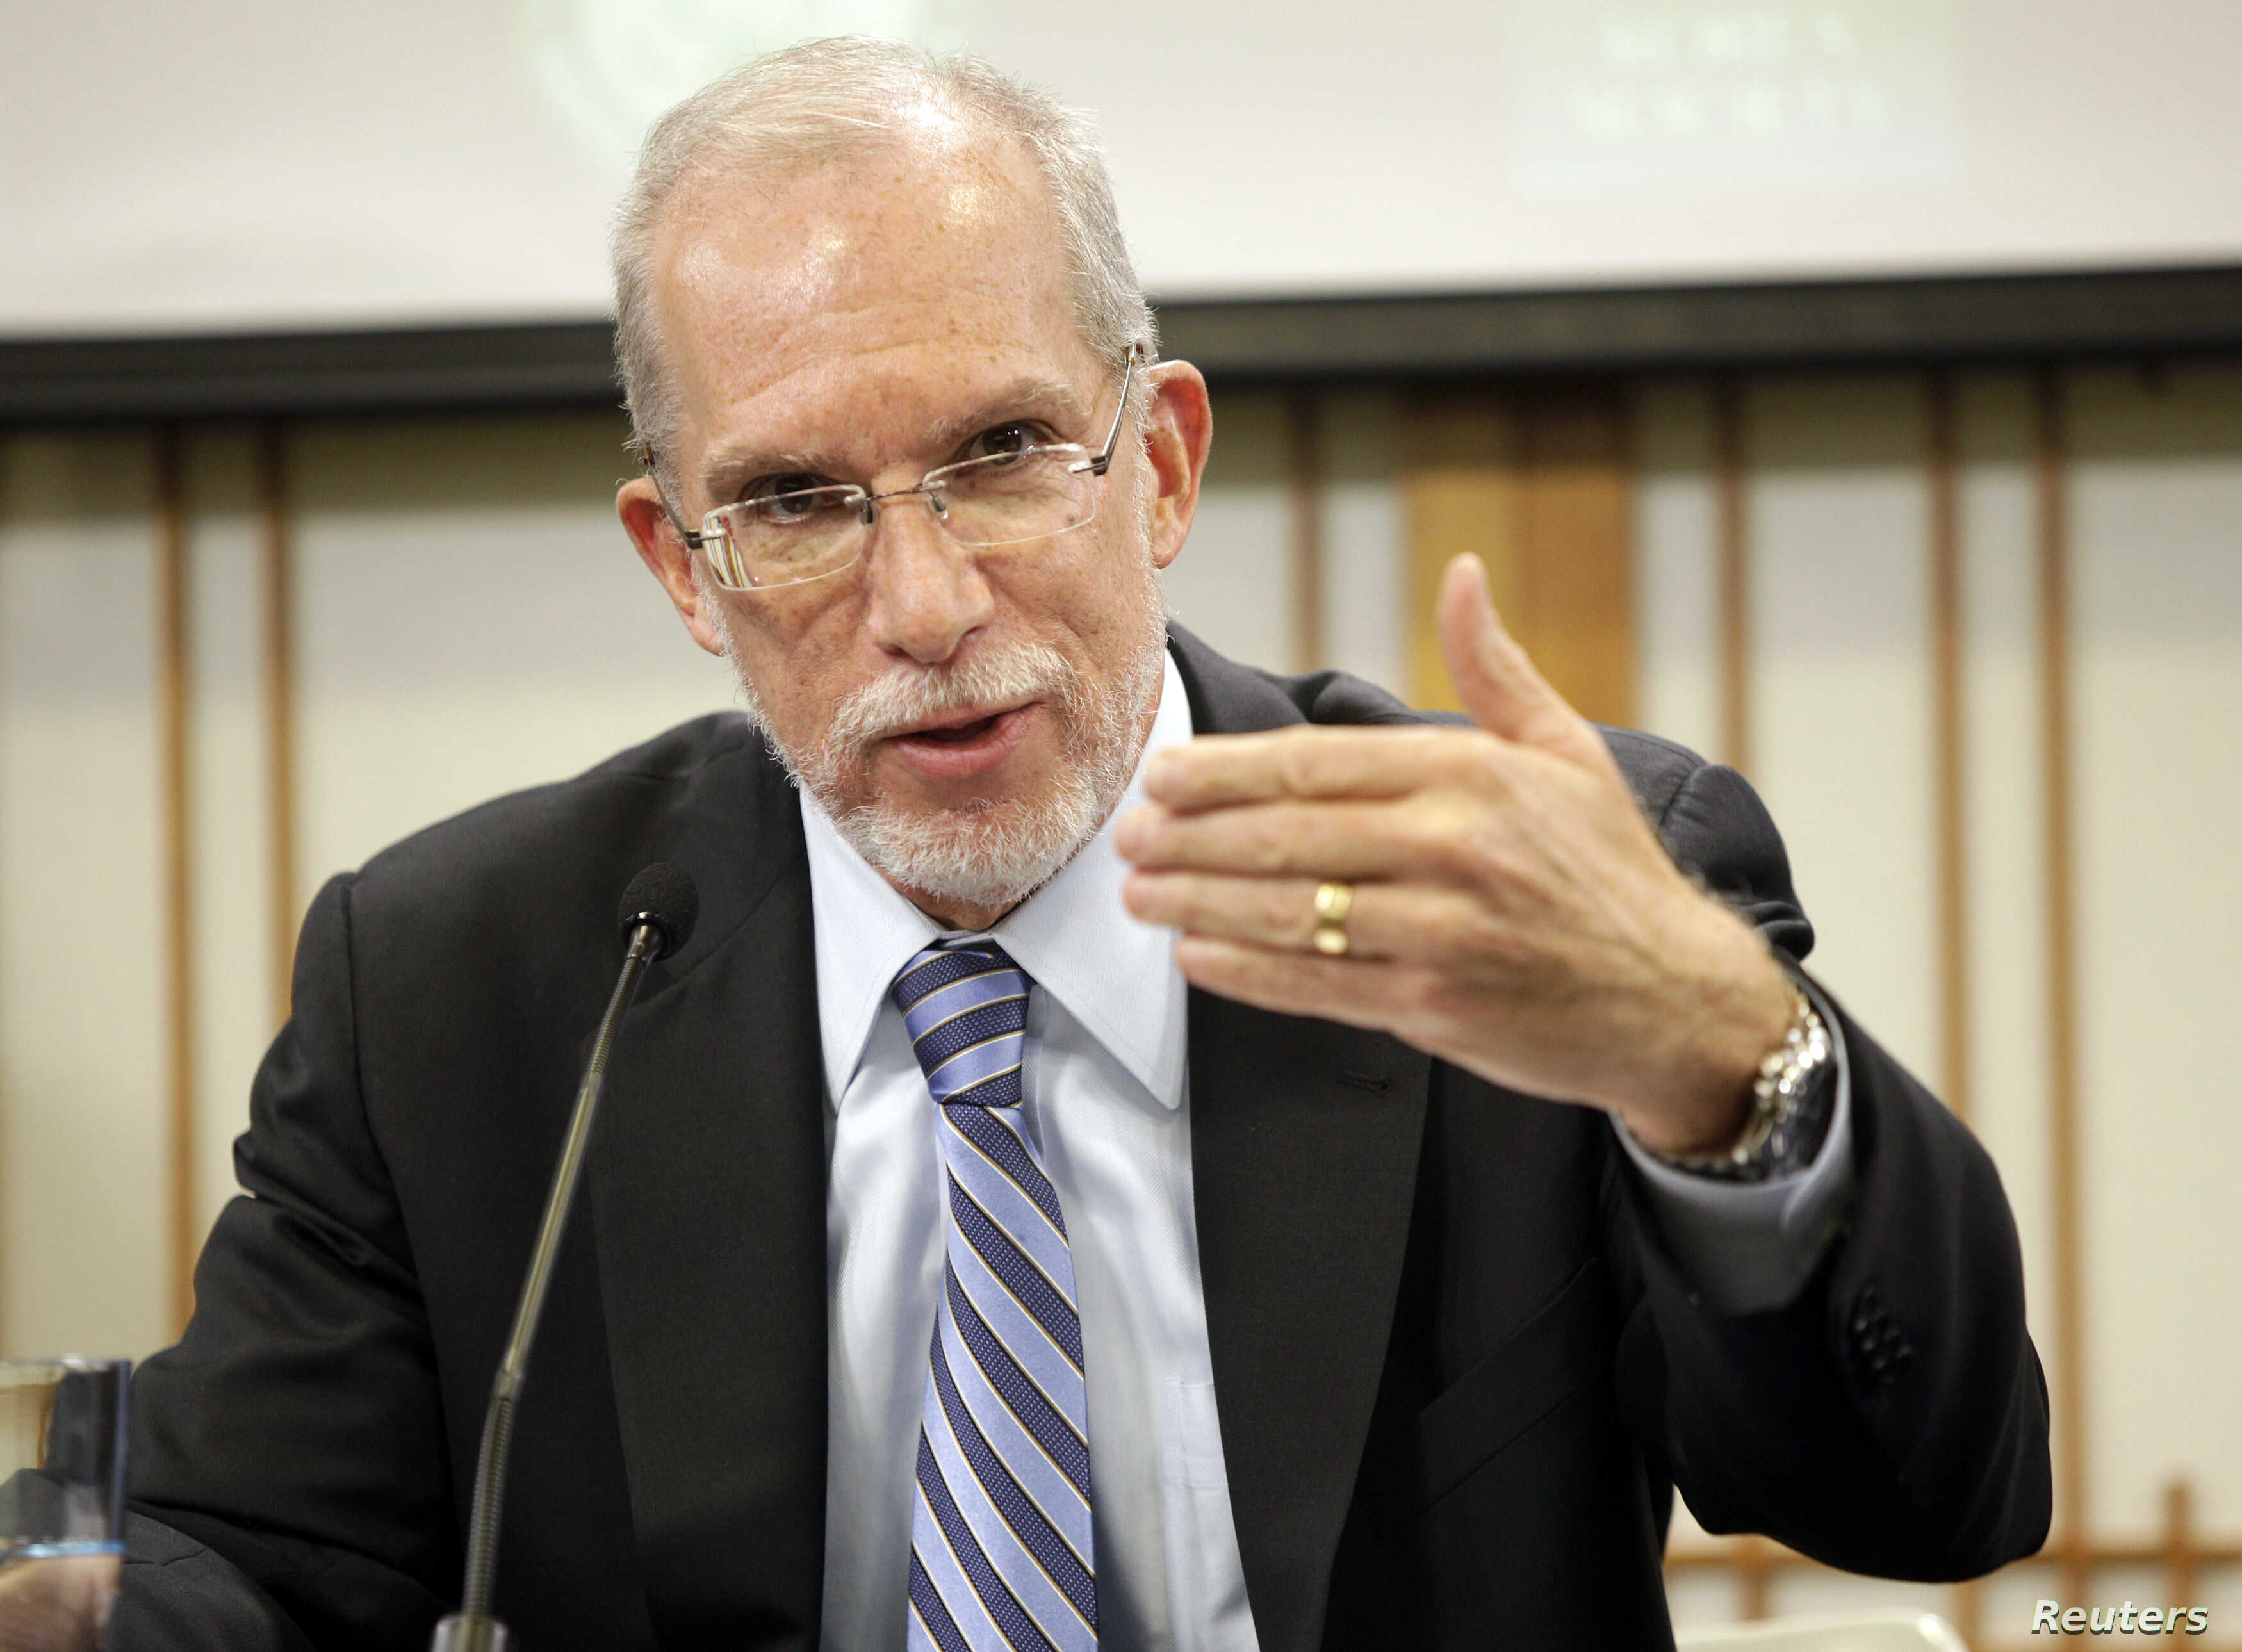 Evans Revere, former U.S. Deputy Ambassador for East Asian Affairs, speaks to the National Committee on American Foreign Policy and a North Korean delegation led by Vice Foreign Minister Ri Yong Ho, at The Korea Society in New York, March 10, 2012.